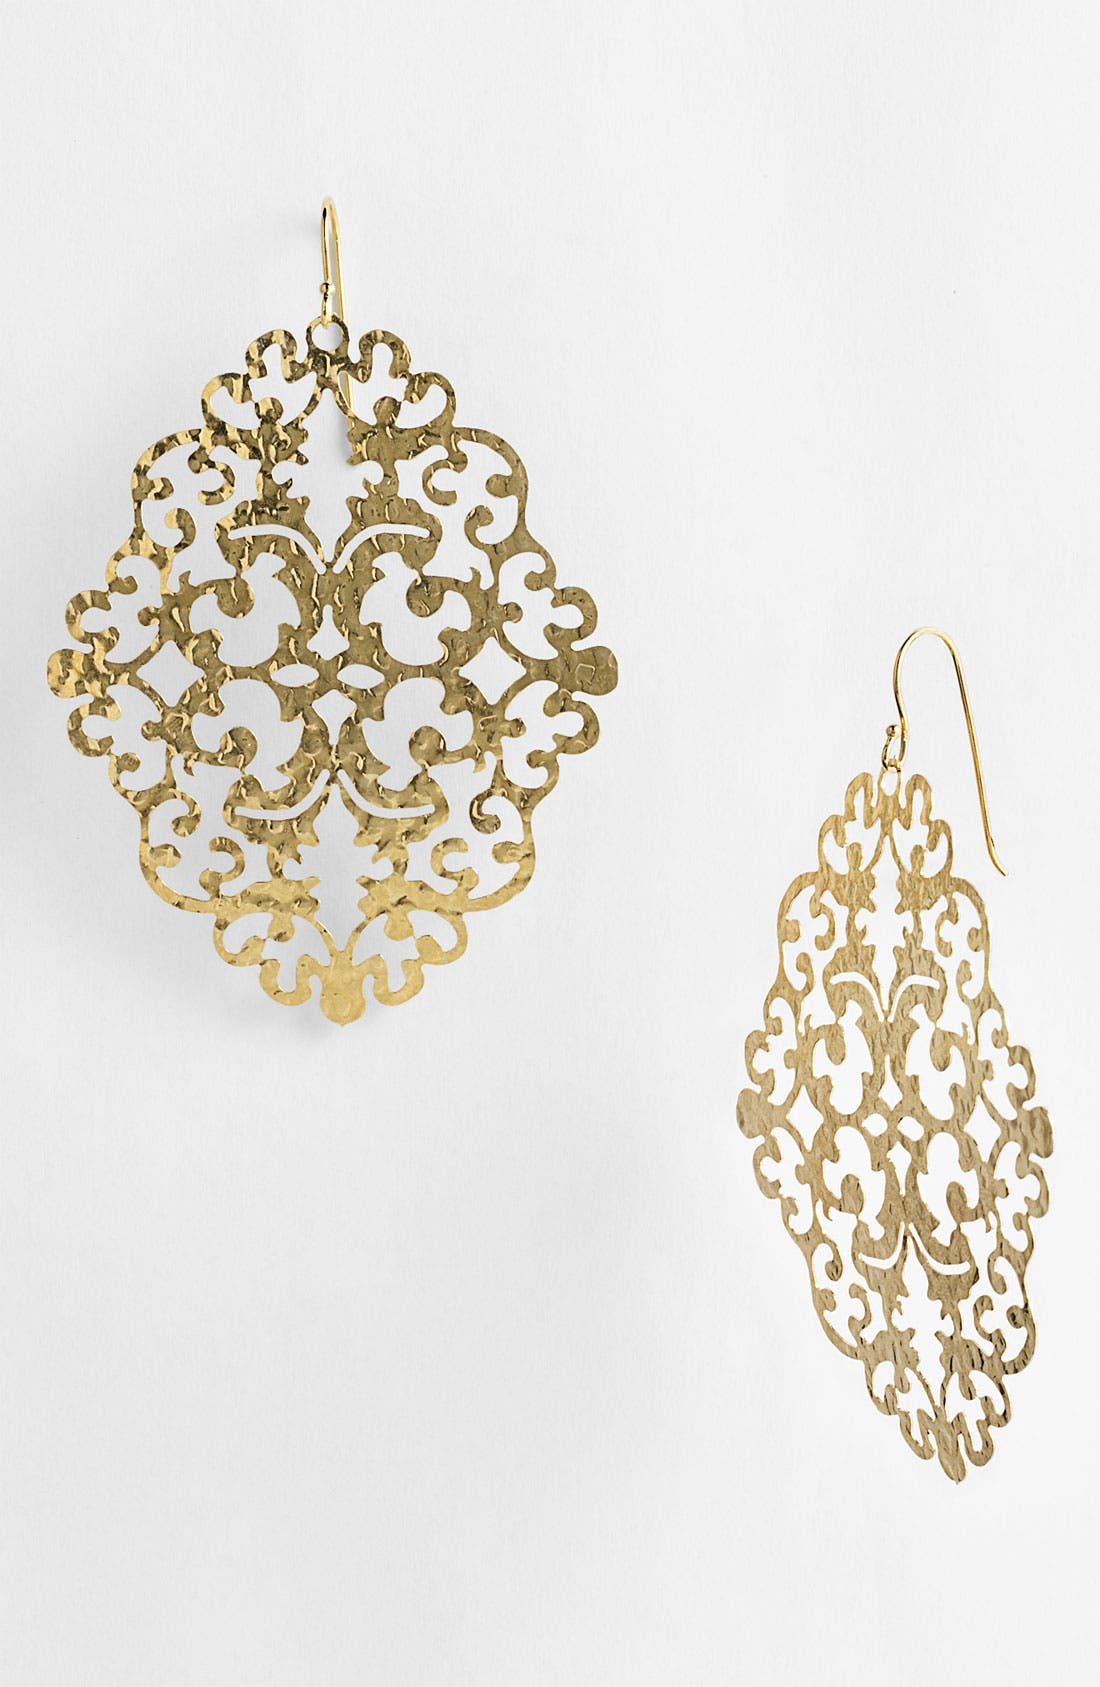 Alternate Image 1 Selected - Argento Vivo 'Artisanal Lace' Diamond Shape Earrings (Nordstrom Exclusive)